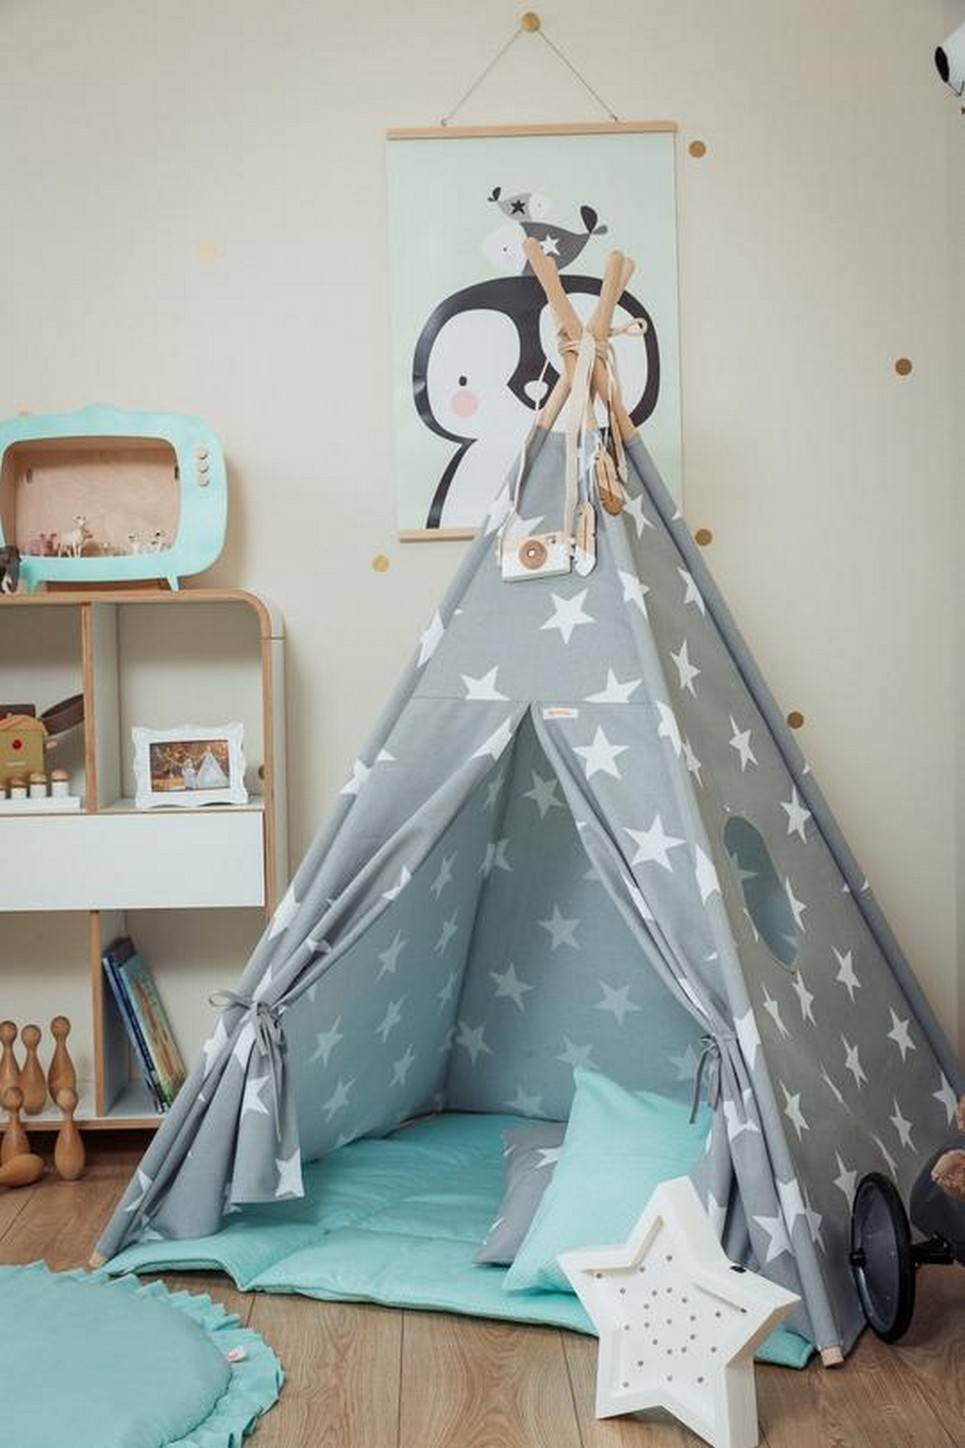 Large Stars Children's Teepee Set with Mint Mat